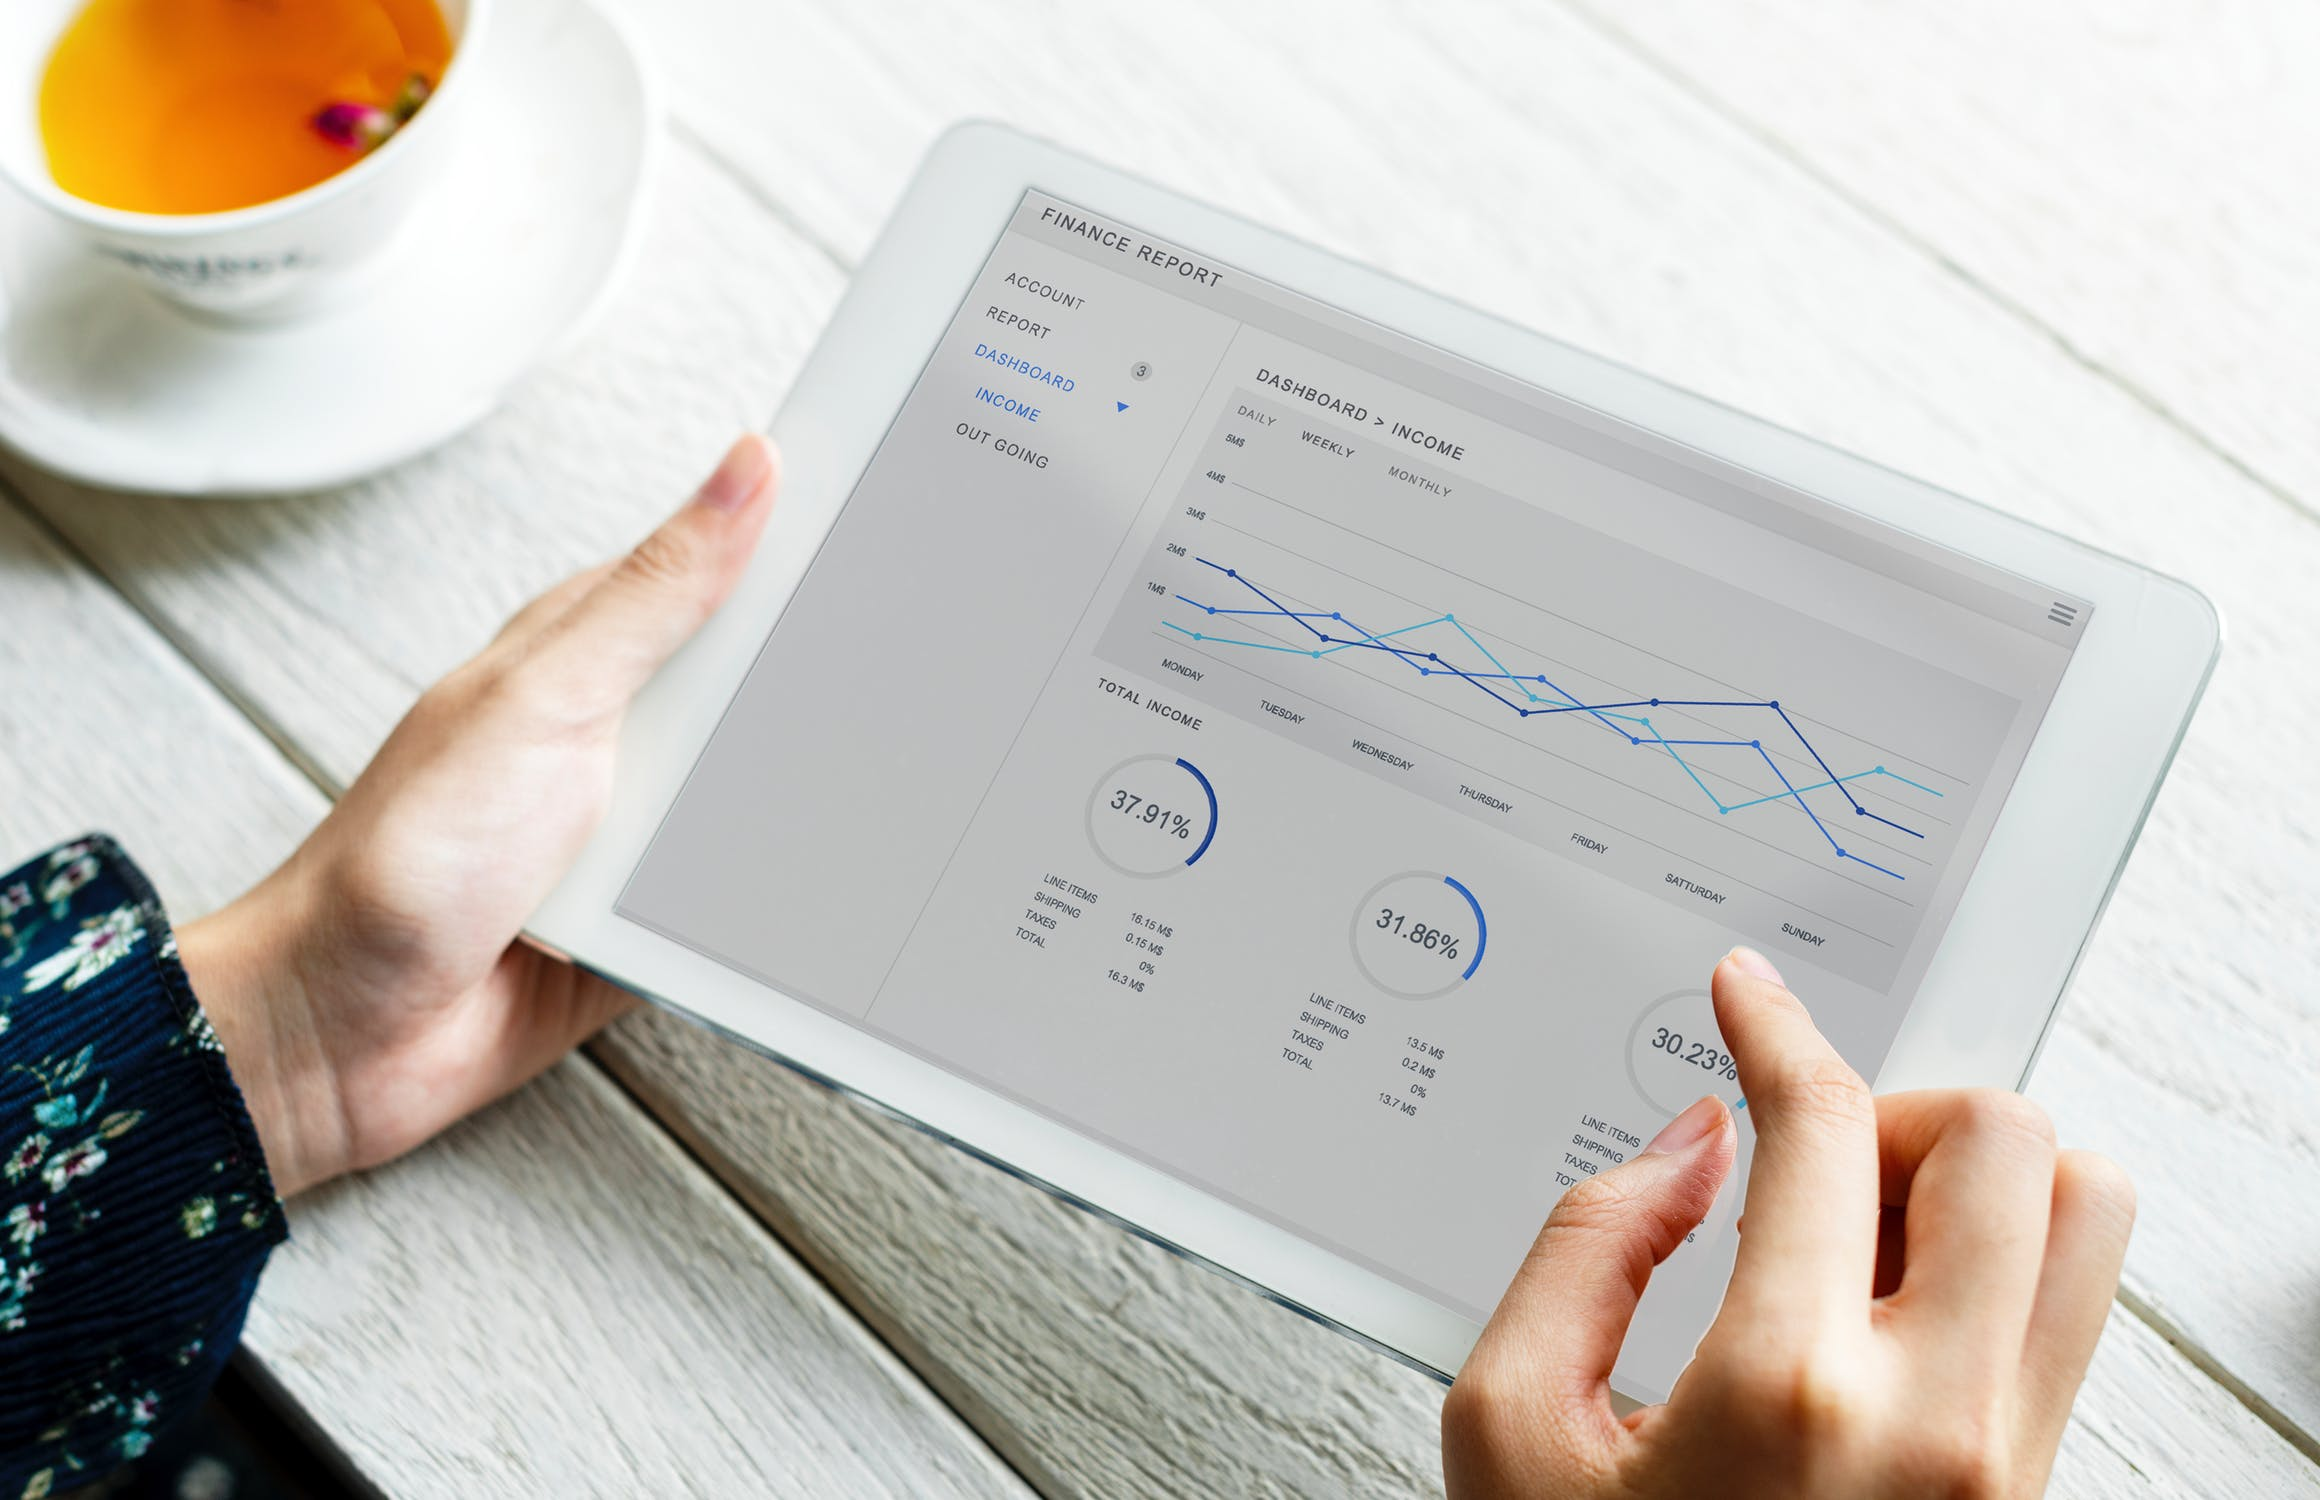 Hands holding iPad with data displayed